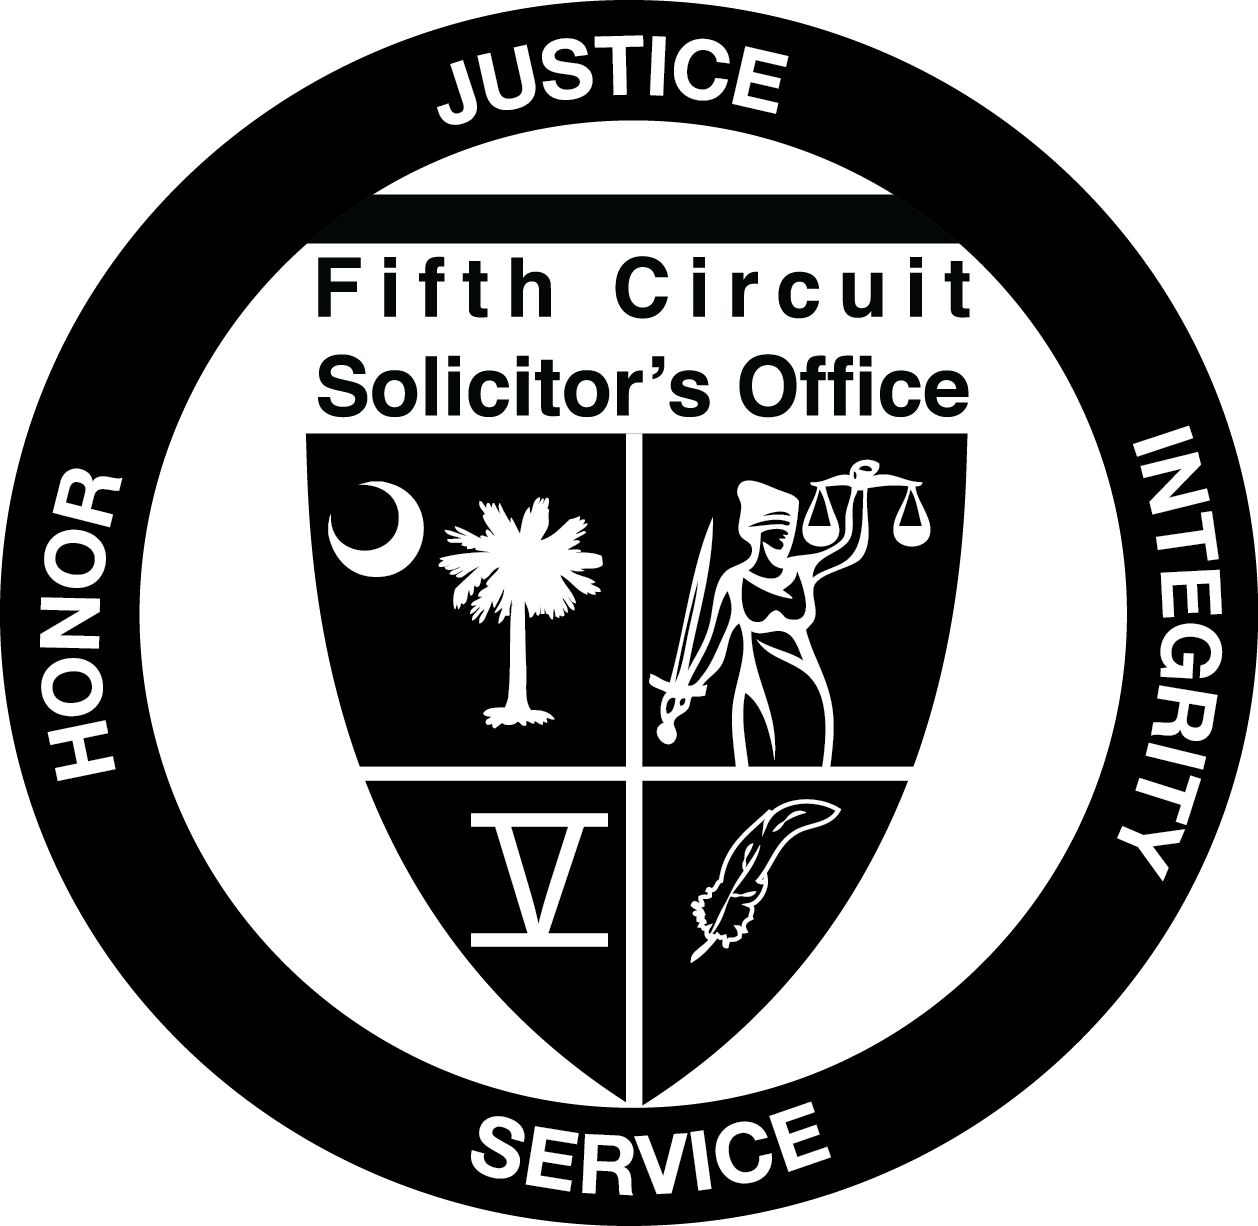 5th-circuit-crest-design